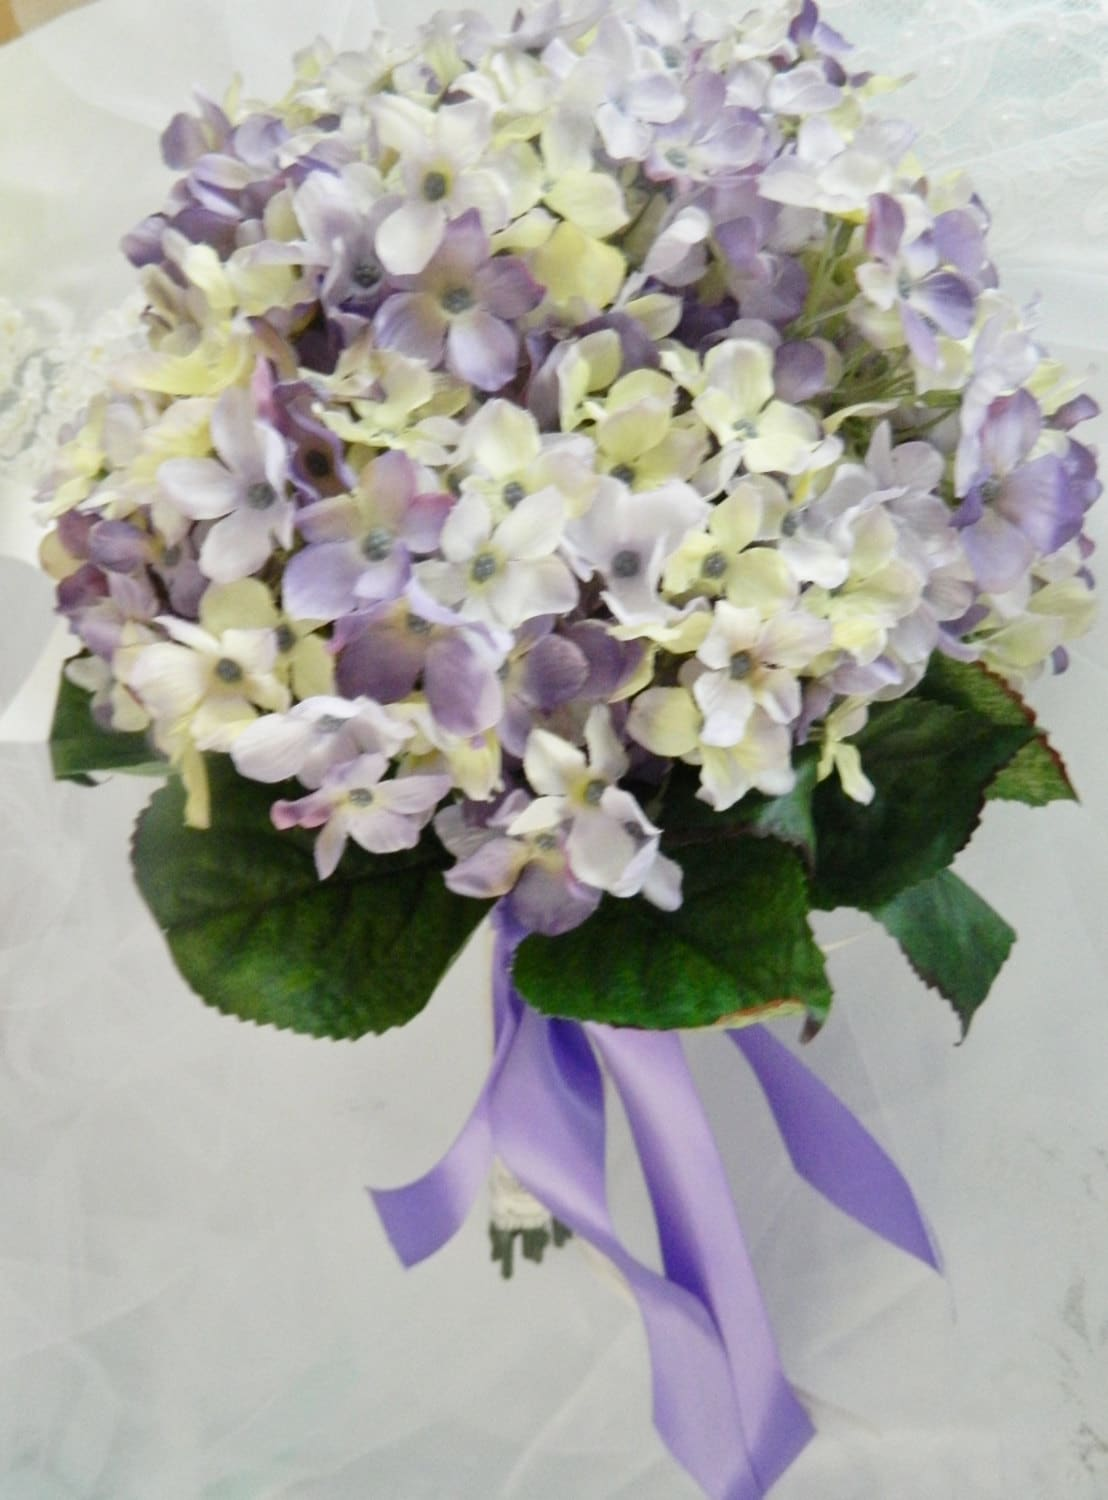 WEDDING BRIDAL BOUQUET Yellow And Lavender Hydrangea Flowers